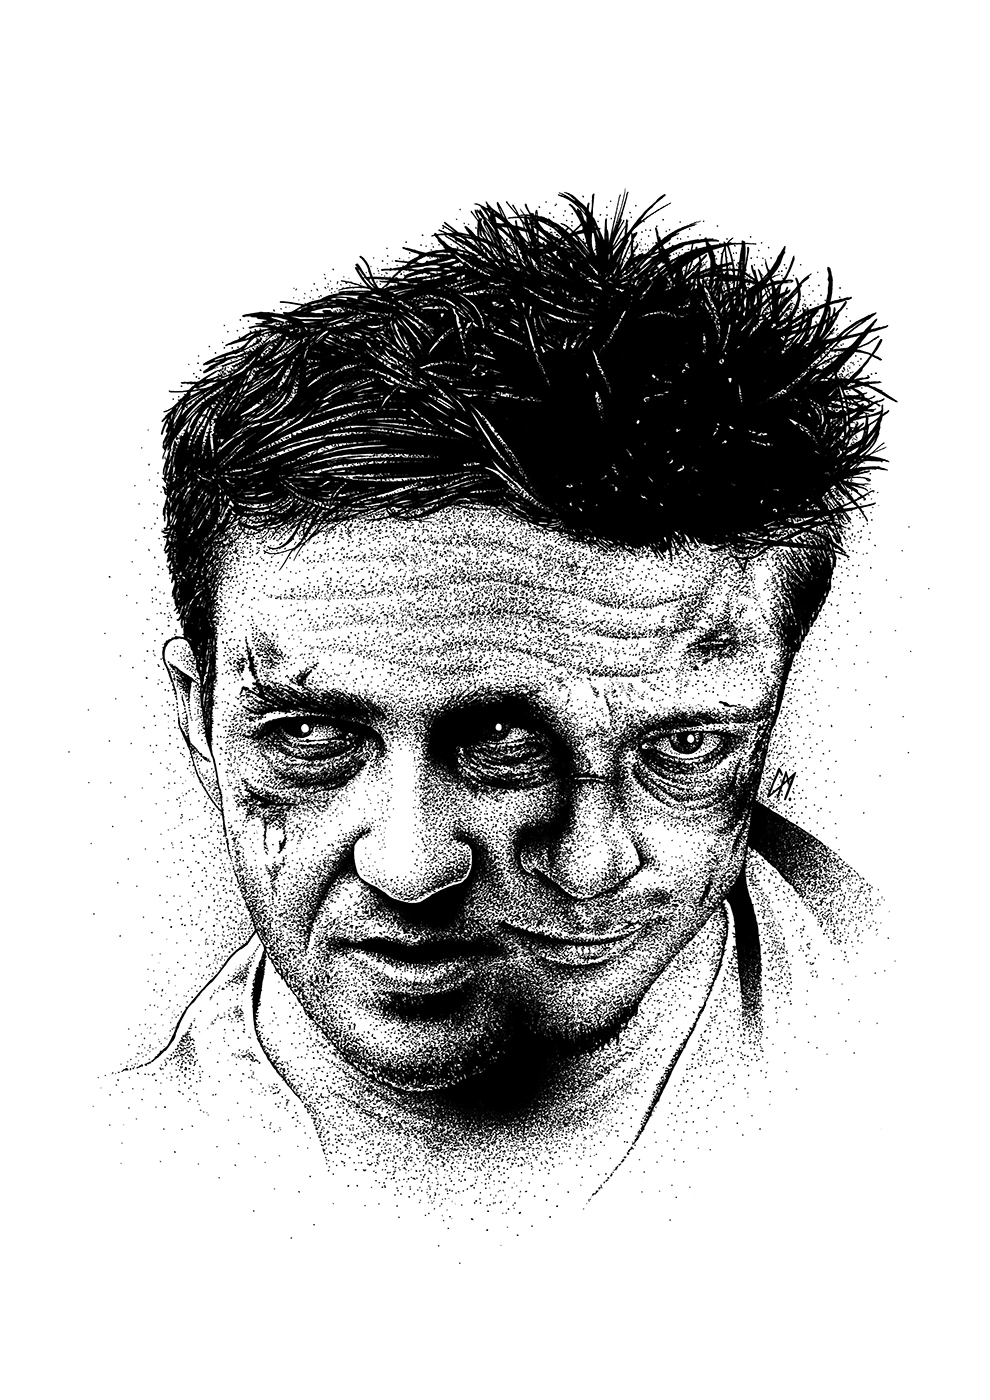 New print available. 'The First Rule Of Fight Club' inspired by the film 'Fight Club'. Medium. Black pen on paper. A4's and A3's available in my store: www.etsy.com/uk/shop/CraigMackayDesign